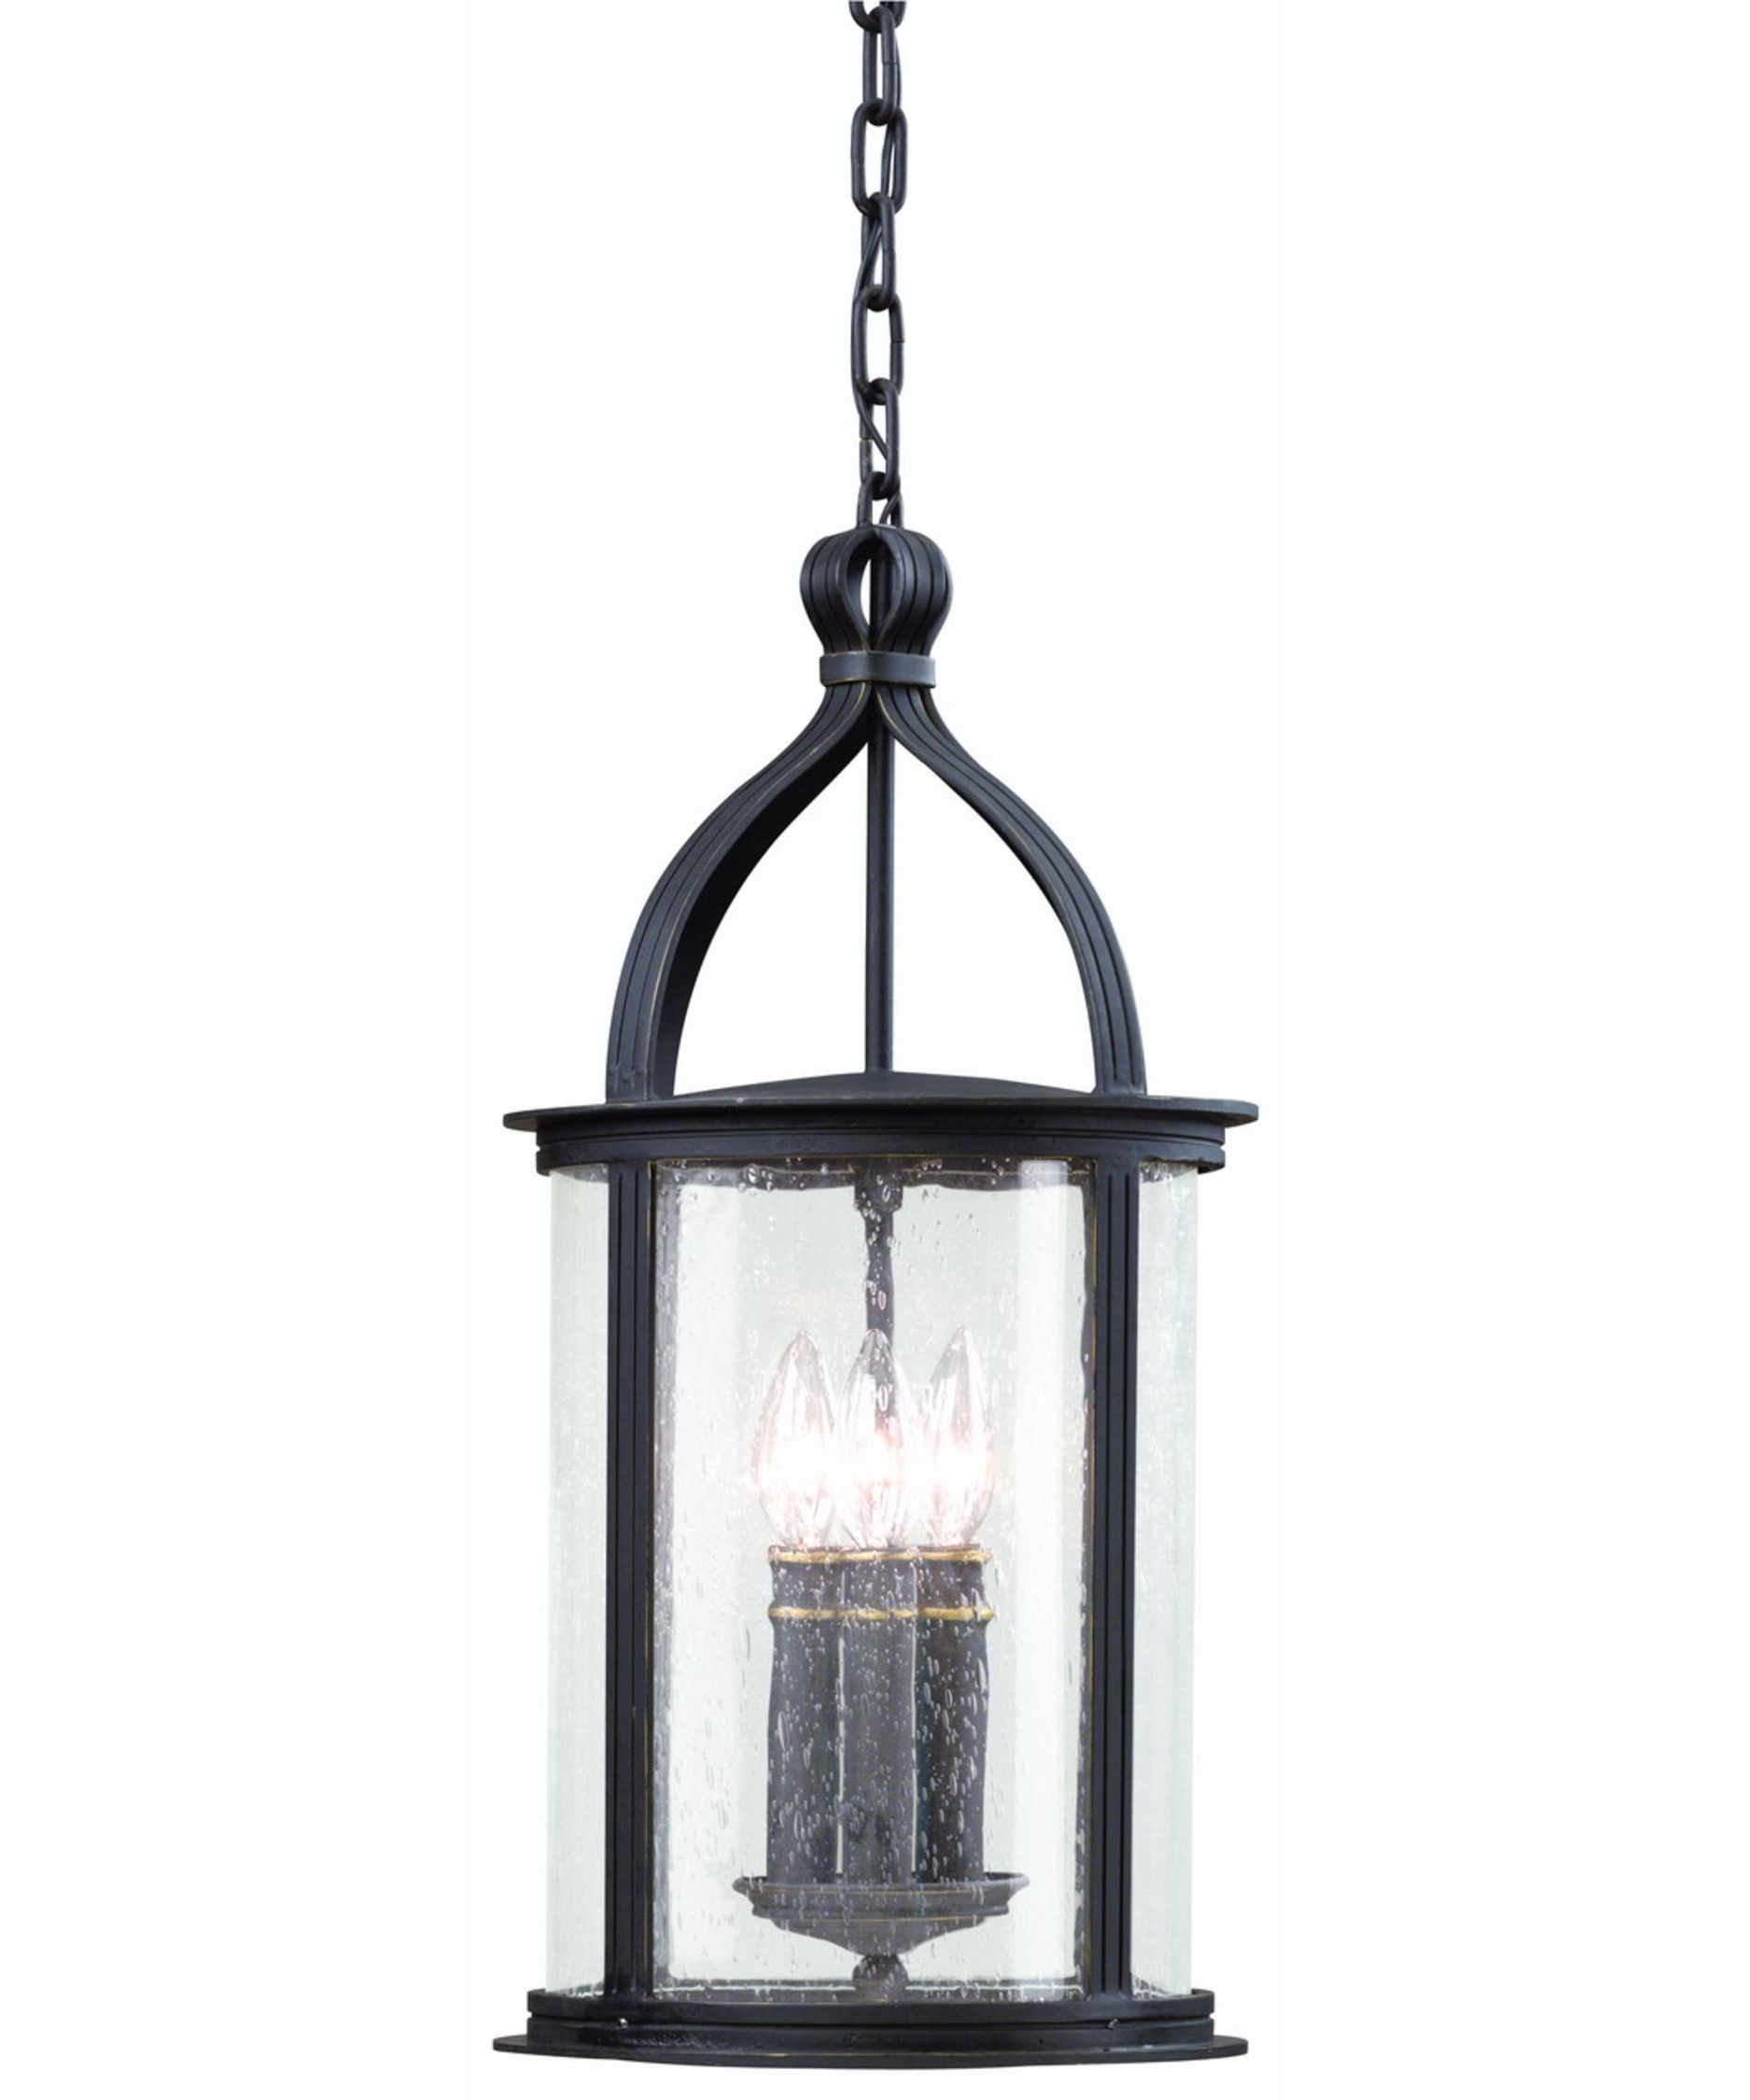 Outdoor Hanging Light In Black Inside Most Up To Date Troy Lighting F9476 Scarsdale 10 Inch Wide 3 Light Outdoor Hanging (View 12 of 20)